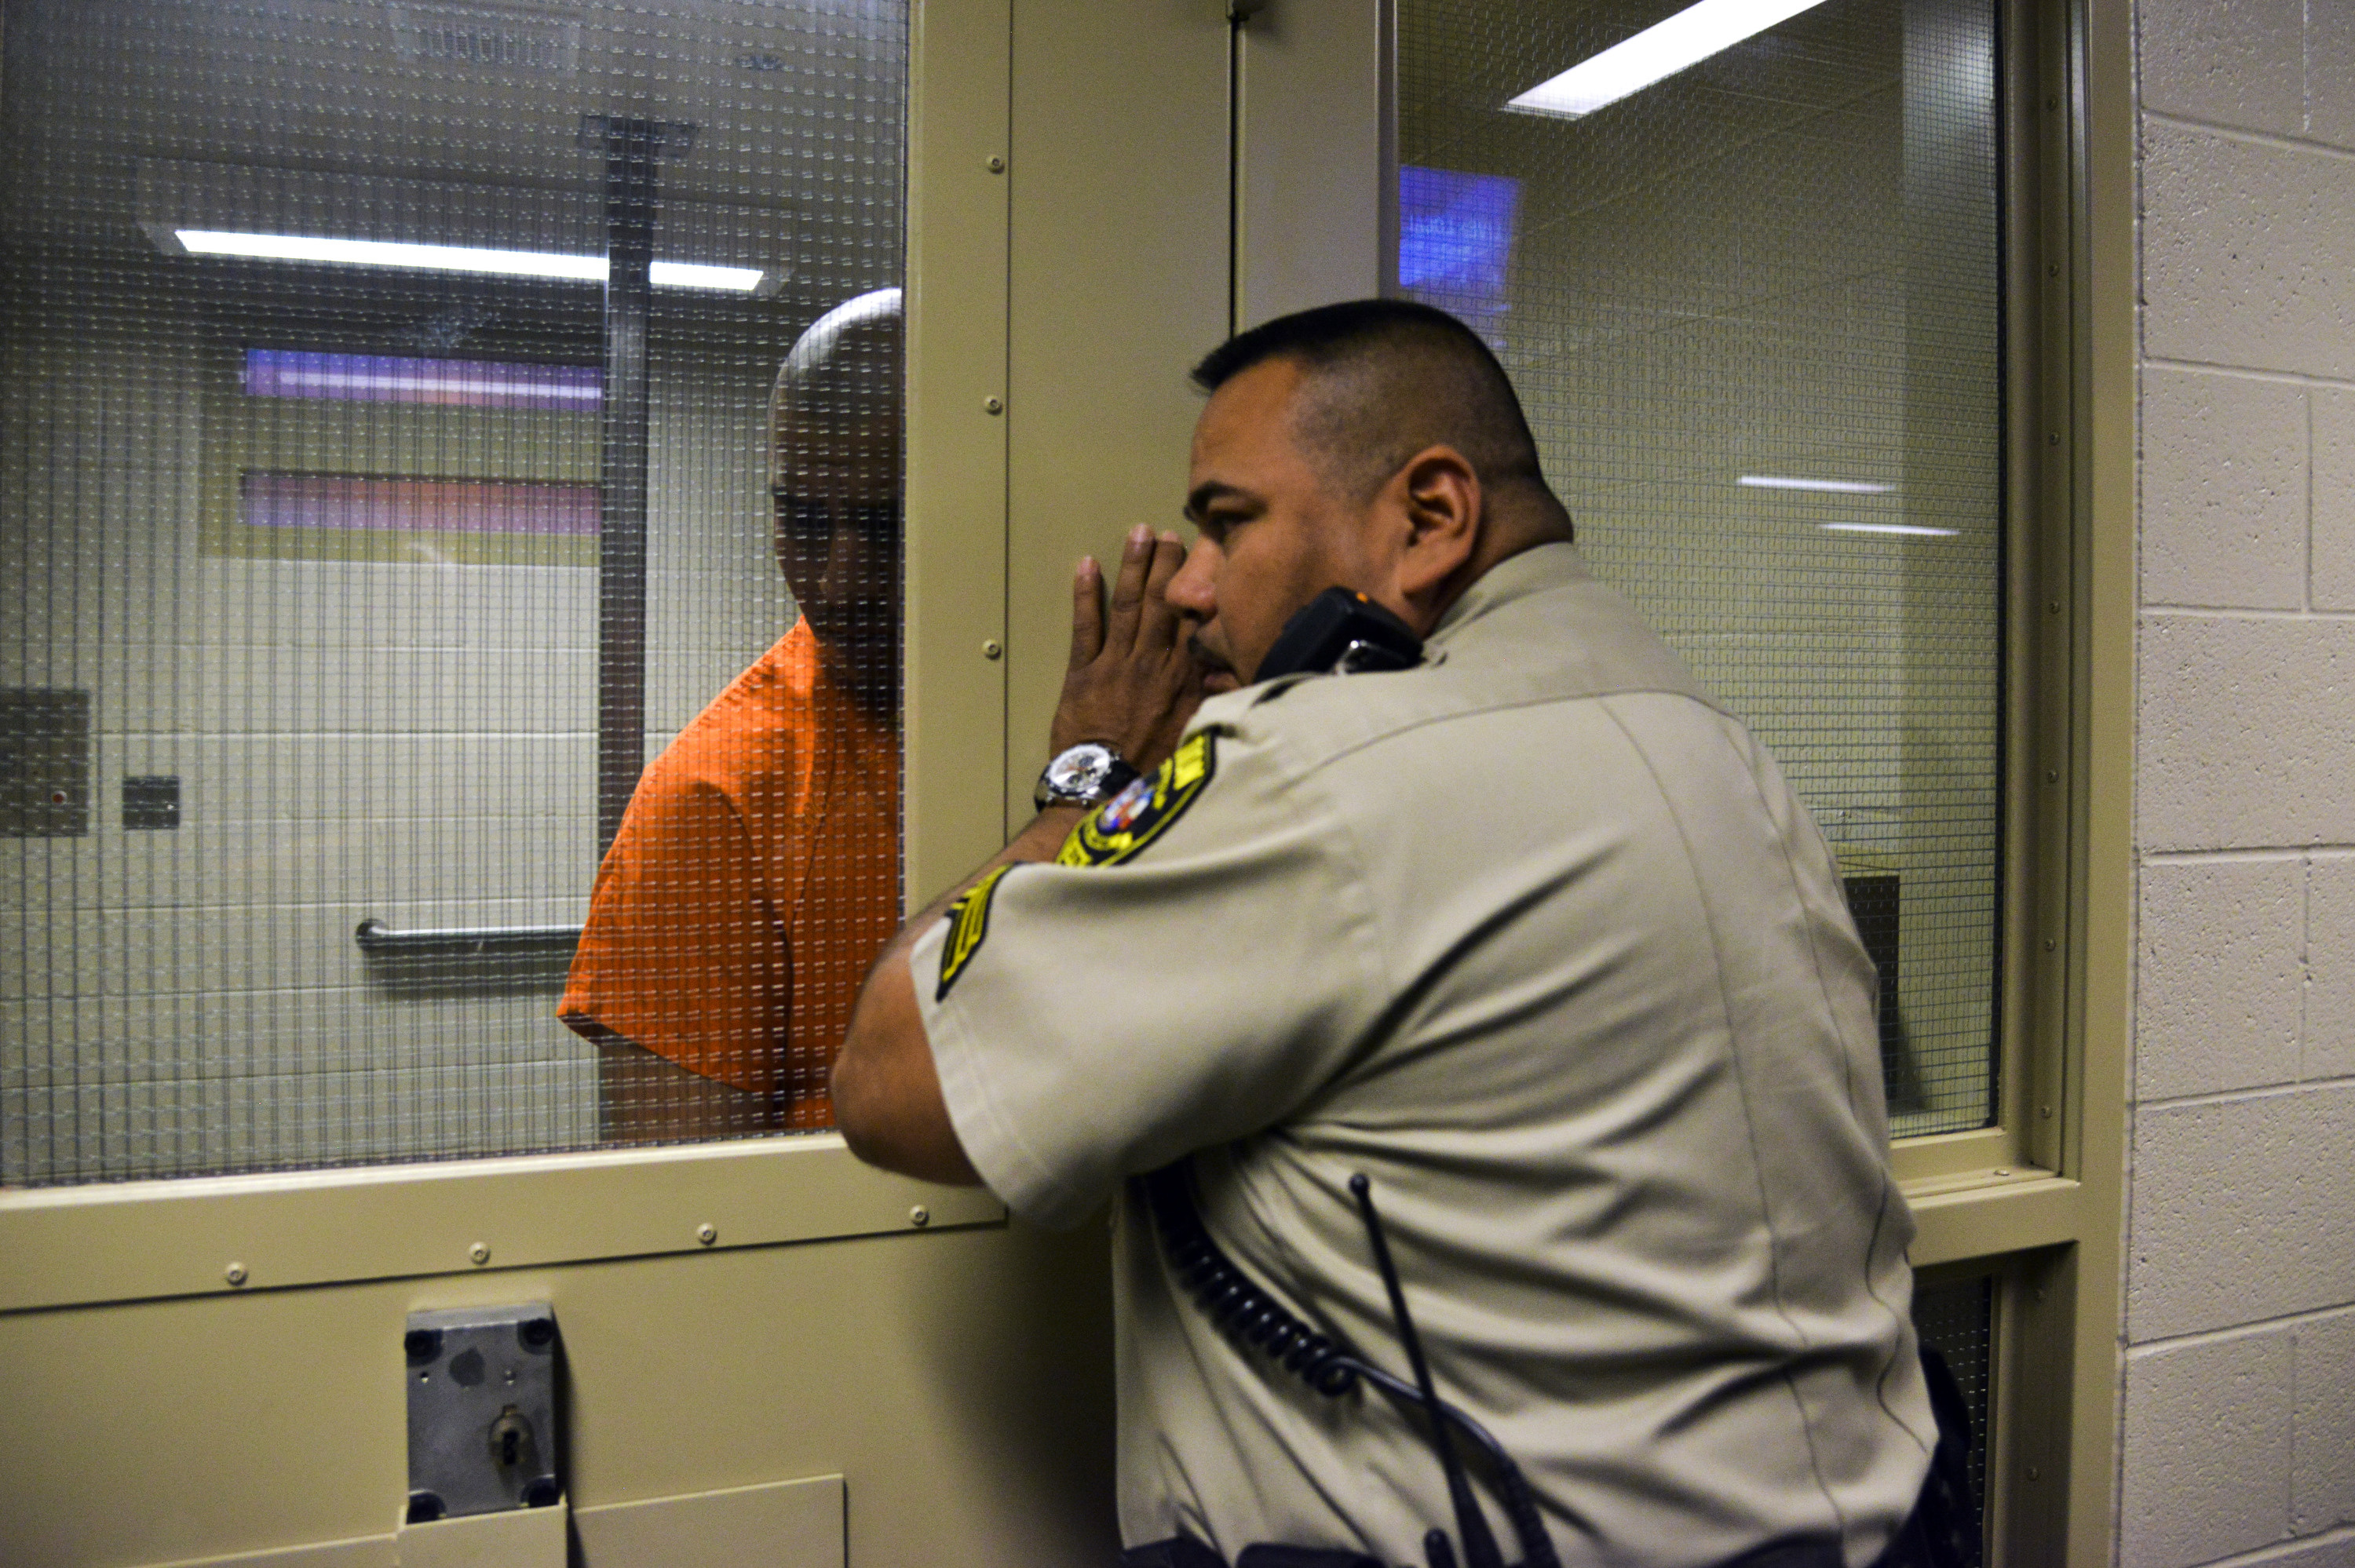 Officer Jesse Hernandez talks to a prisoner in the Pascua Yaqui tribal jail in the Pascua Yaqui Indian Reservation, Ariz. on March 18, 2014.